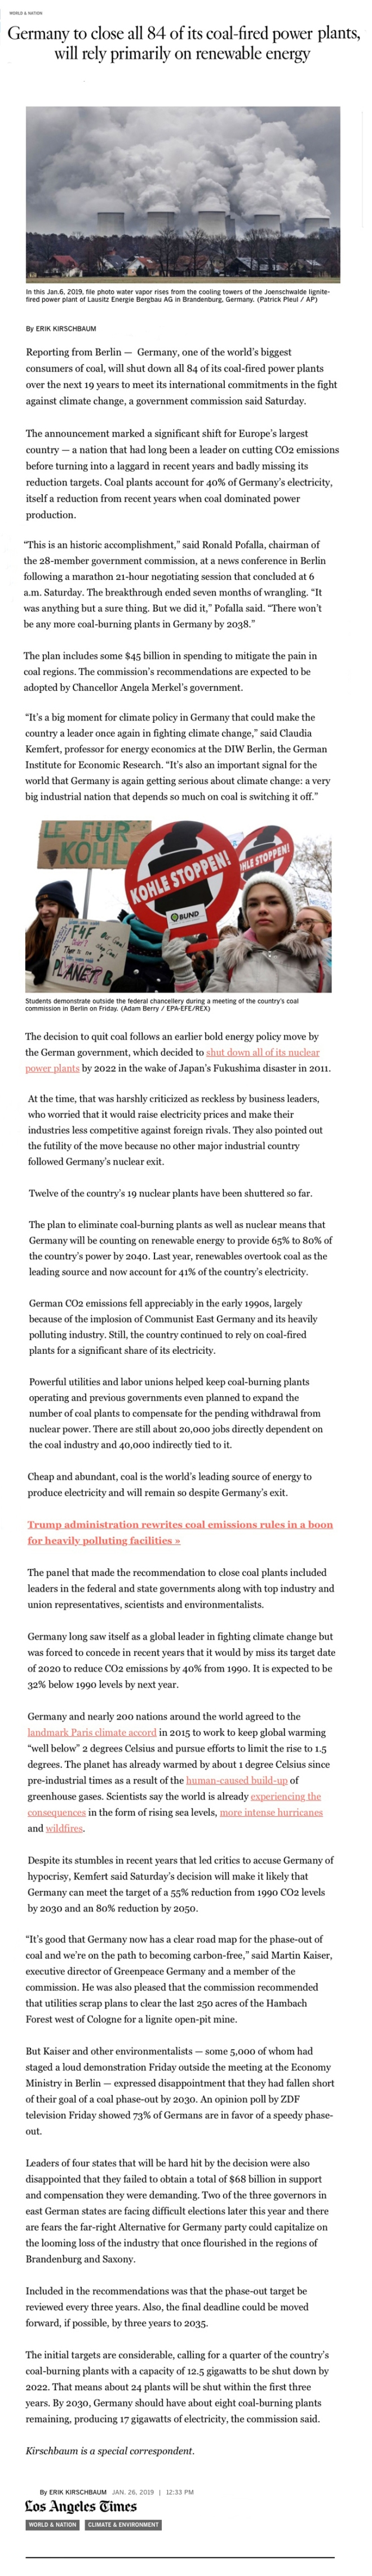 Germany-closing-its-powerplants